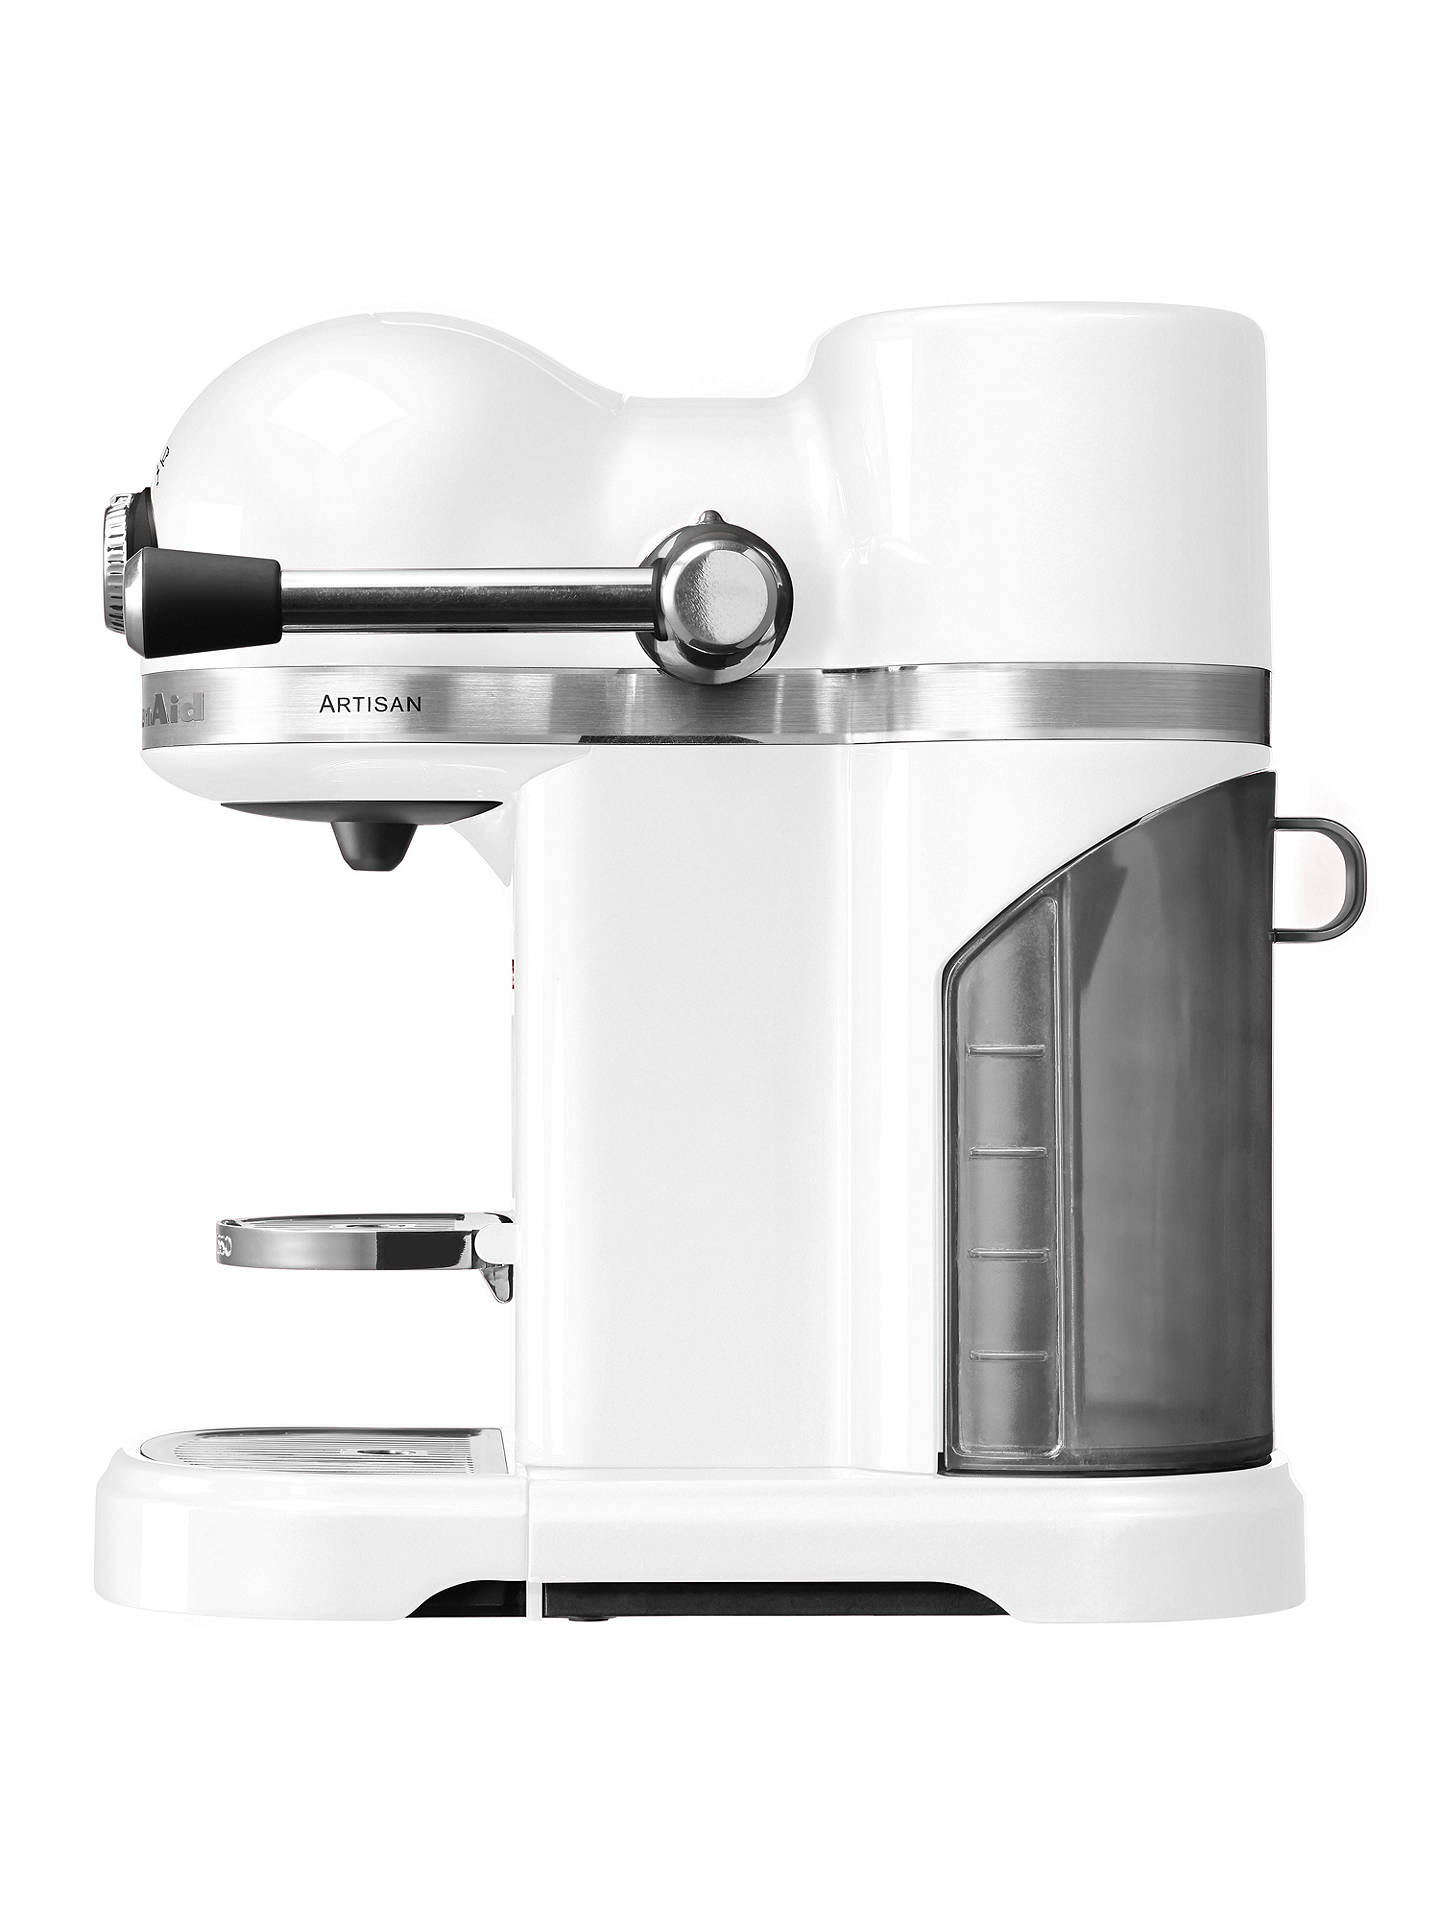 Buy Nespresso Artisan Coffee Machine by KitchenAid, Frosted Pearl Online at johnlewis.com